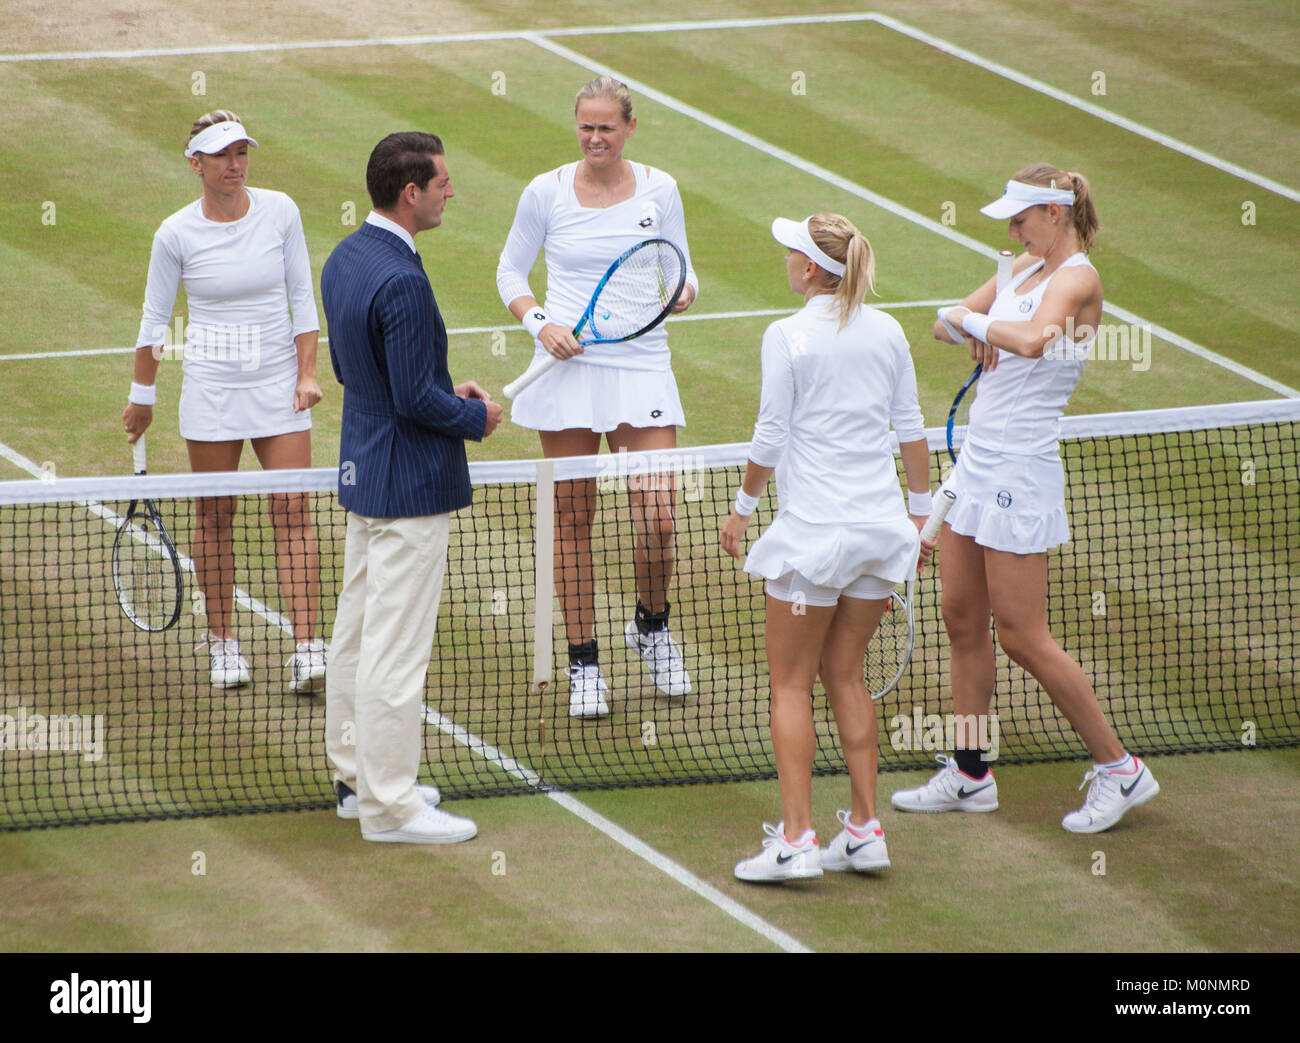 Umpire tosses coin, at start of womens doubles match,Centre Court Wimbledon tennis championship 2017, London, England, - Stock Image